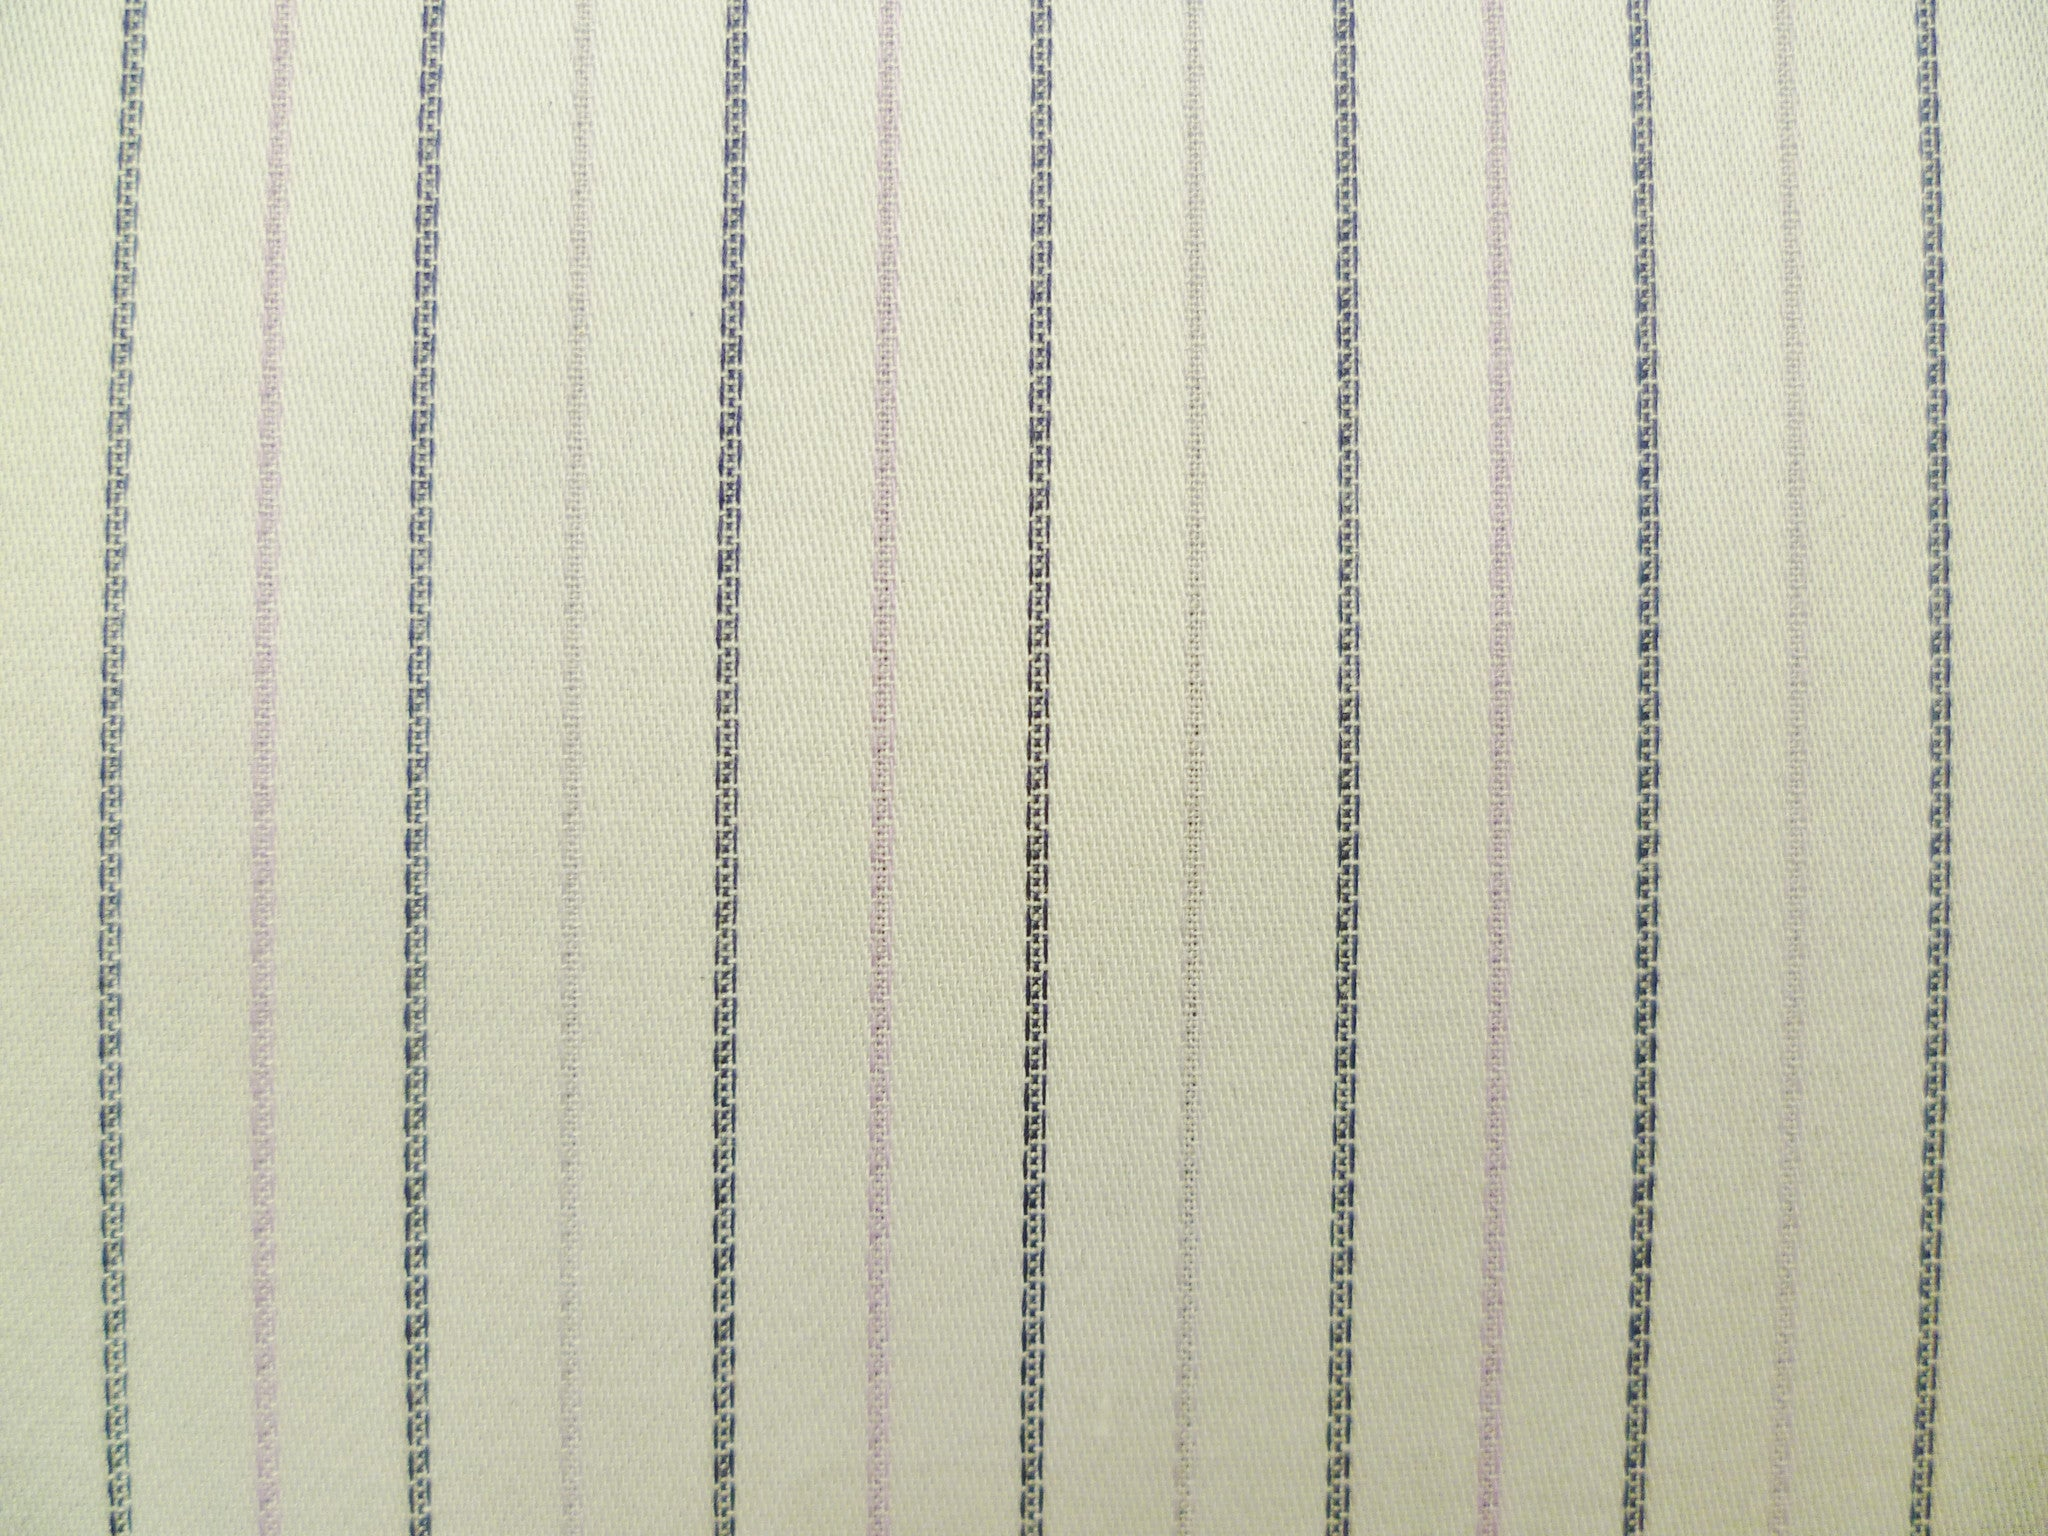 Lavender, Black, Lilac and White Striped Cotton